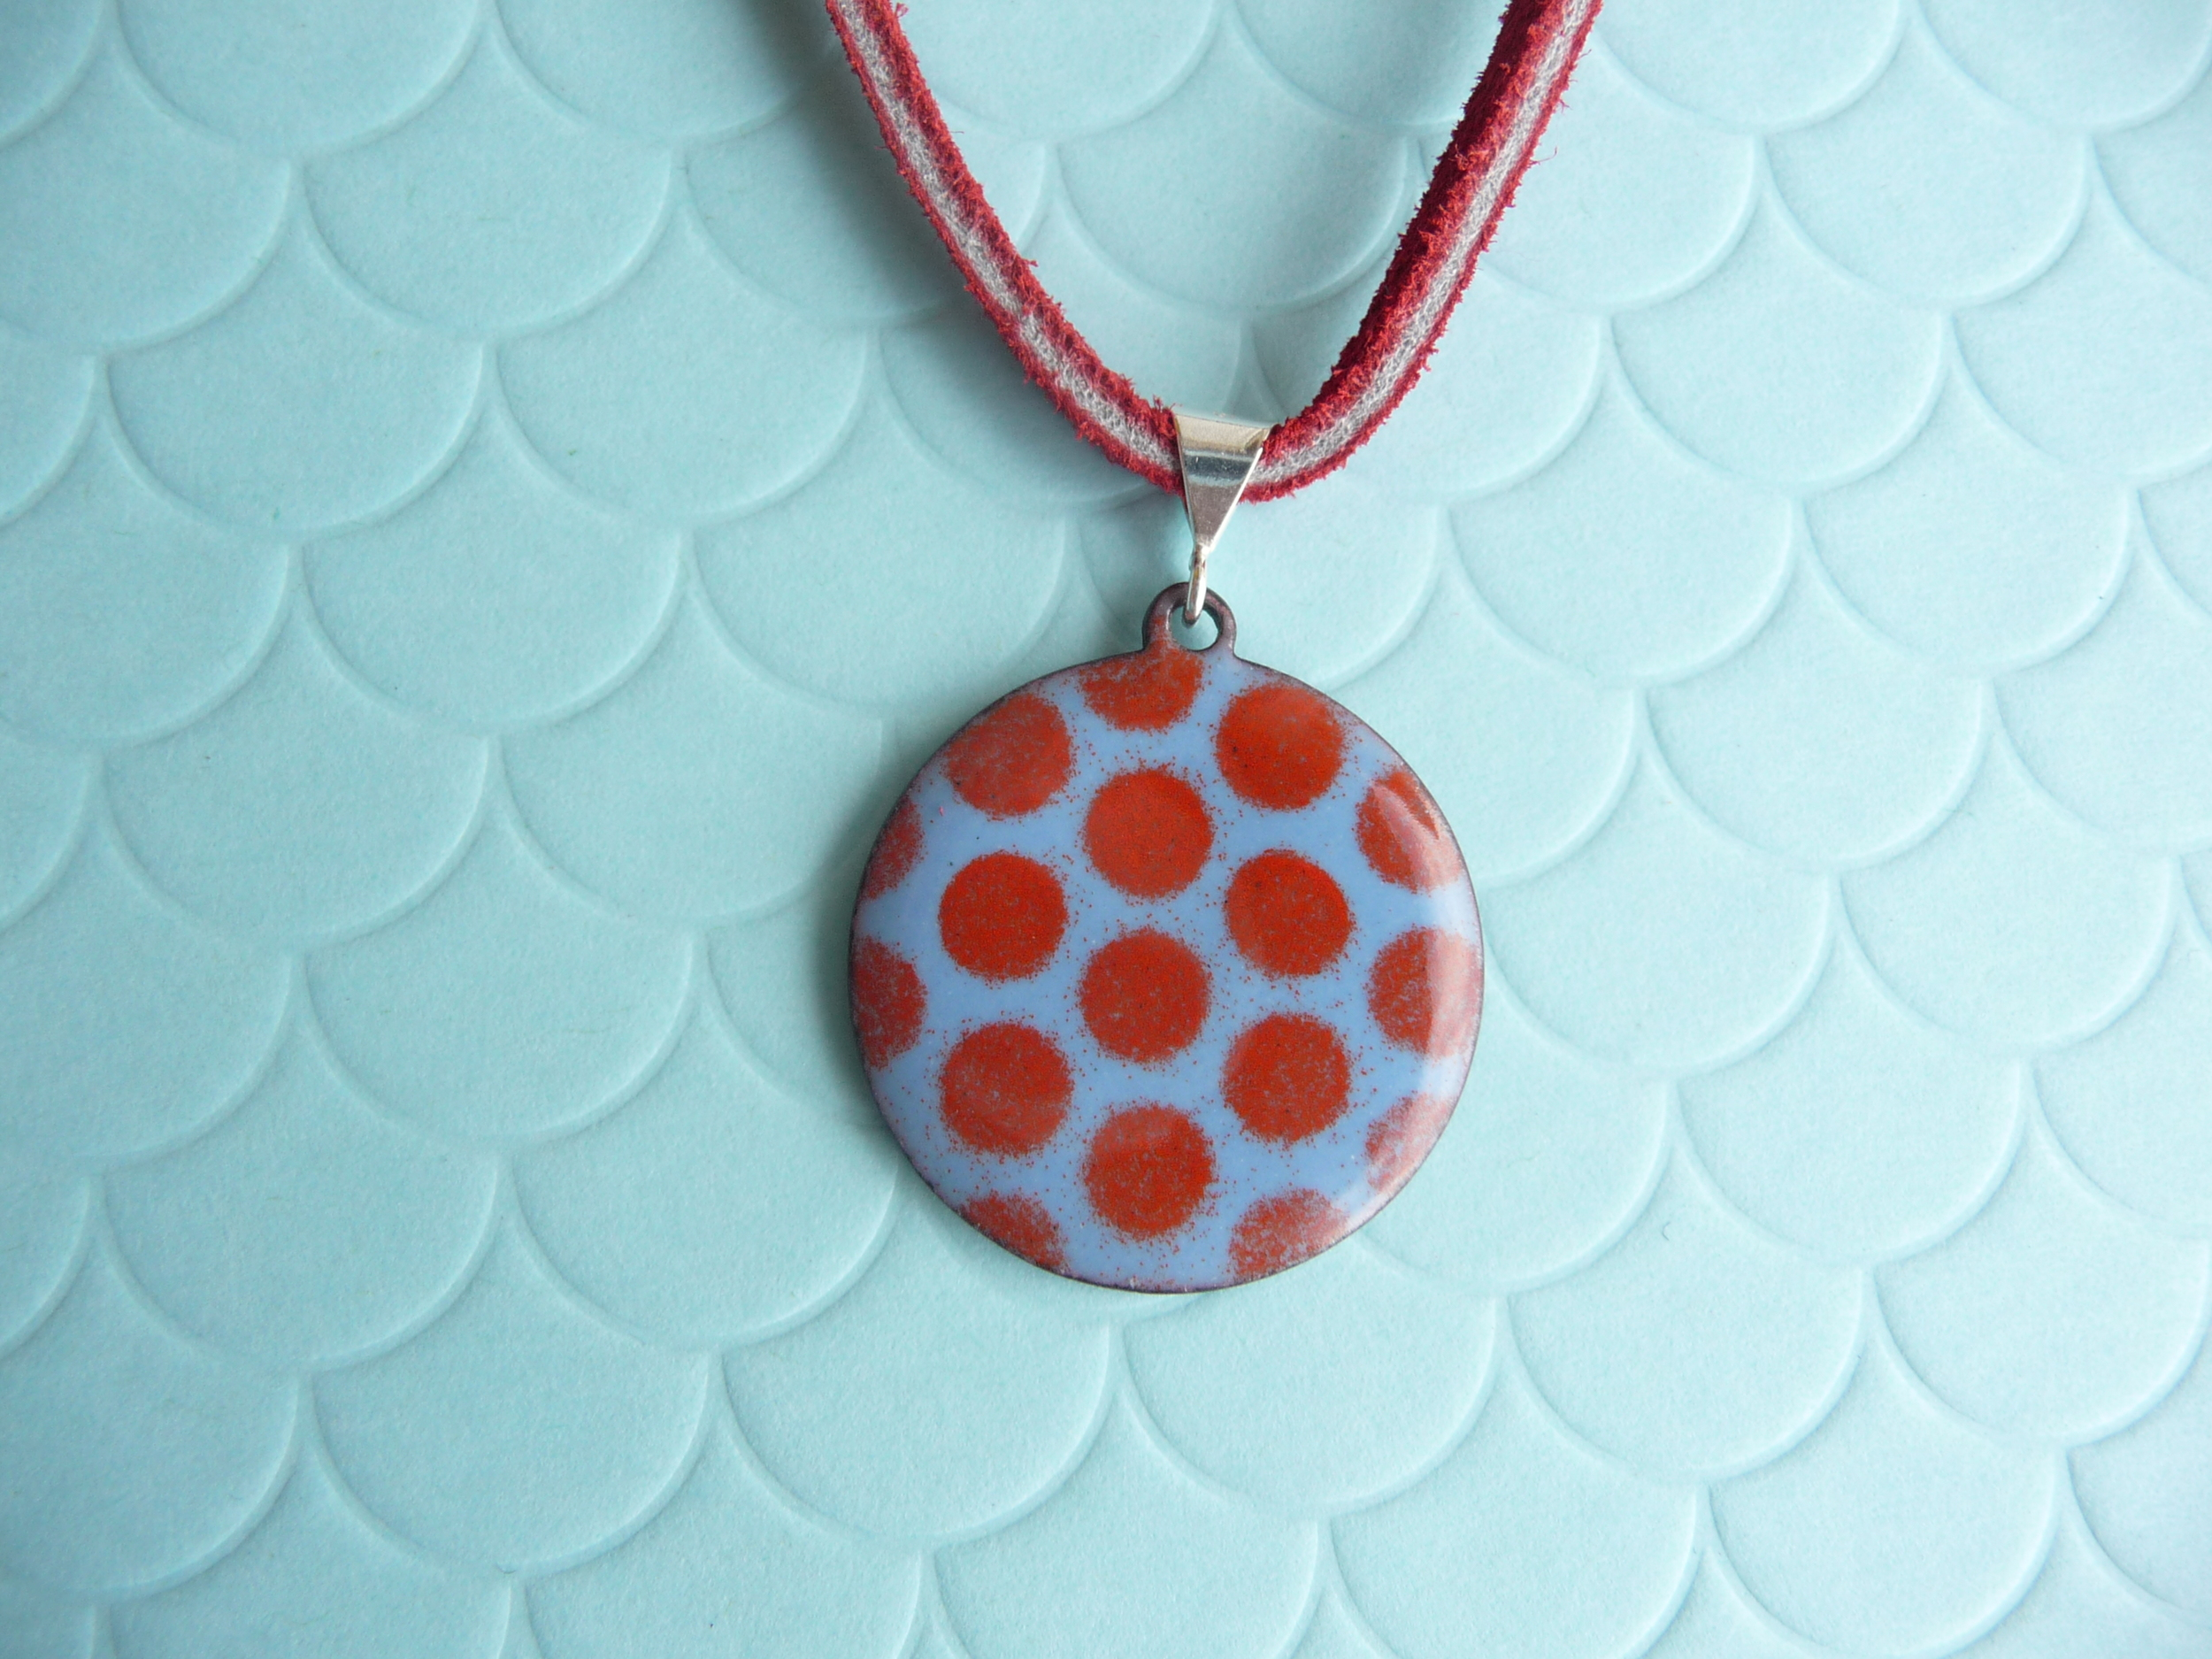 Polka Dot Necklaces